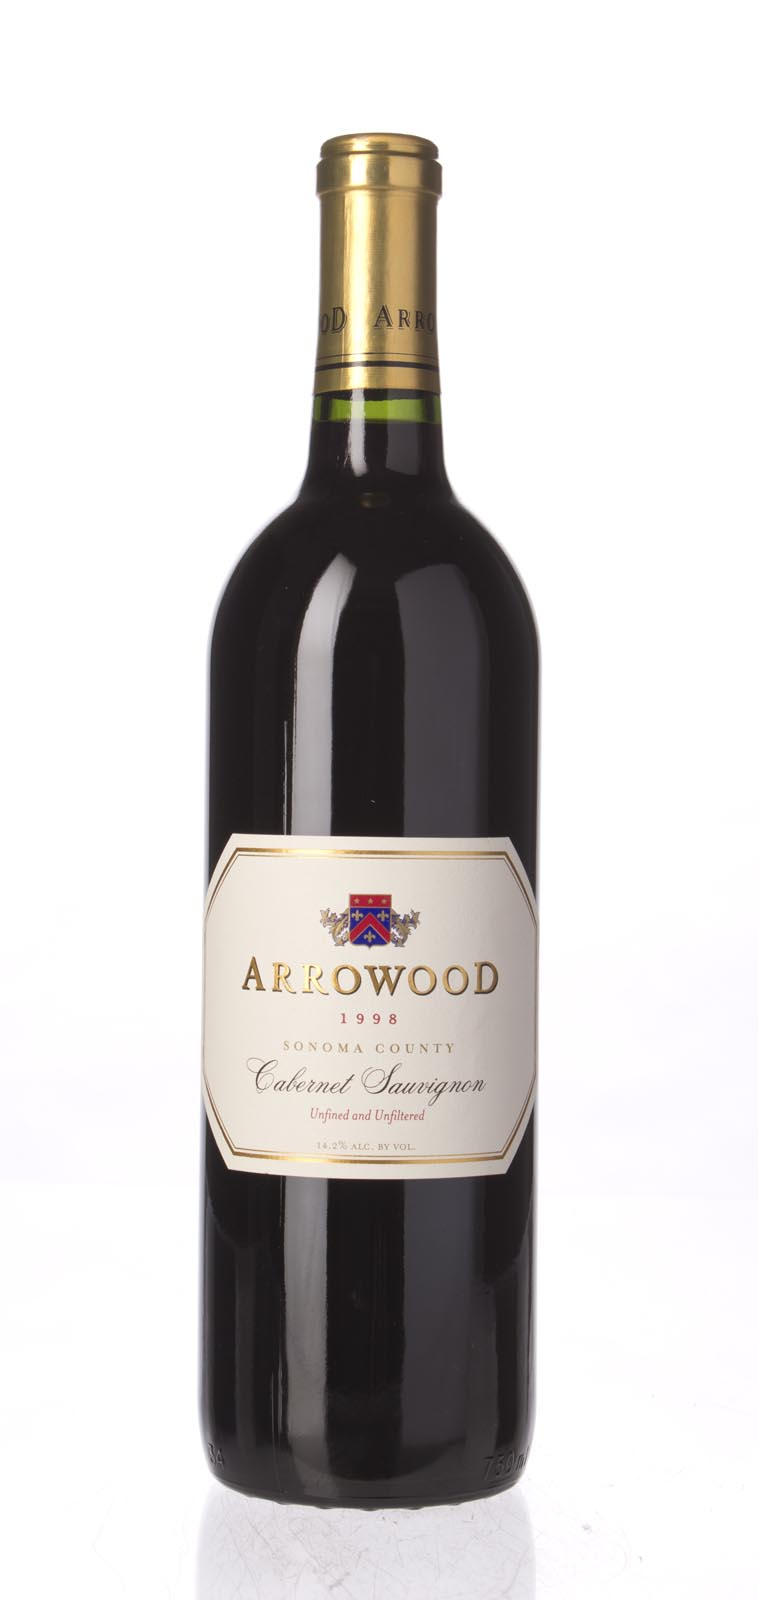 Arrowood Cabernet Sauvignon Sonoma County 1998, 750mL () from The BPW - Merchants of rare and fine wines.